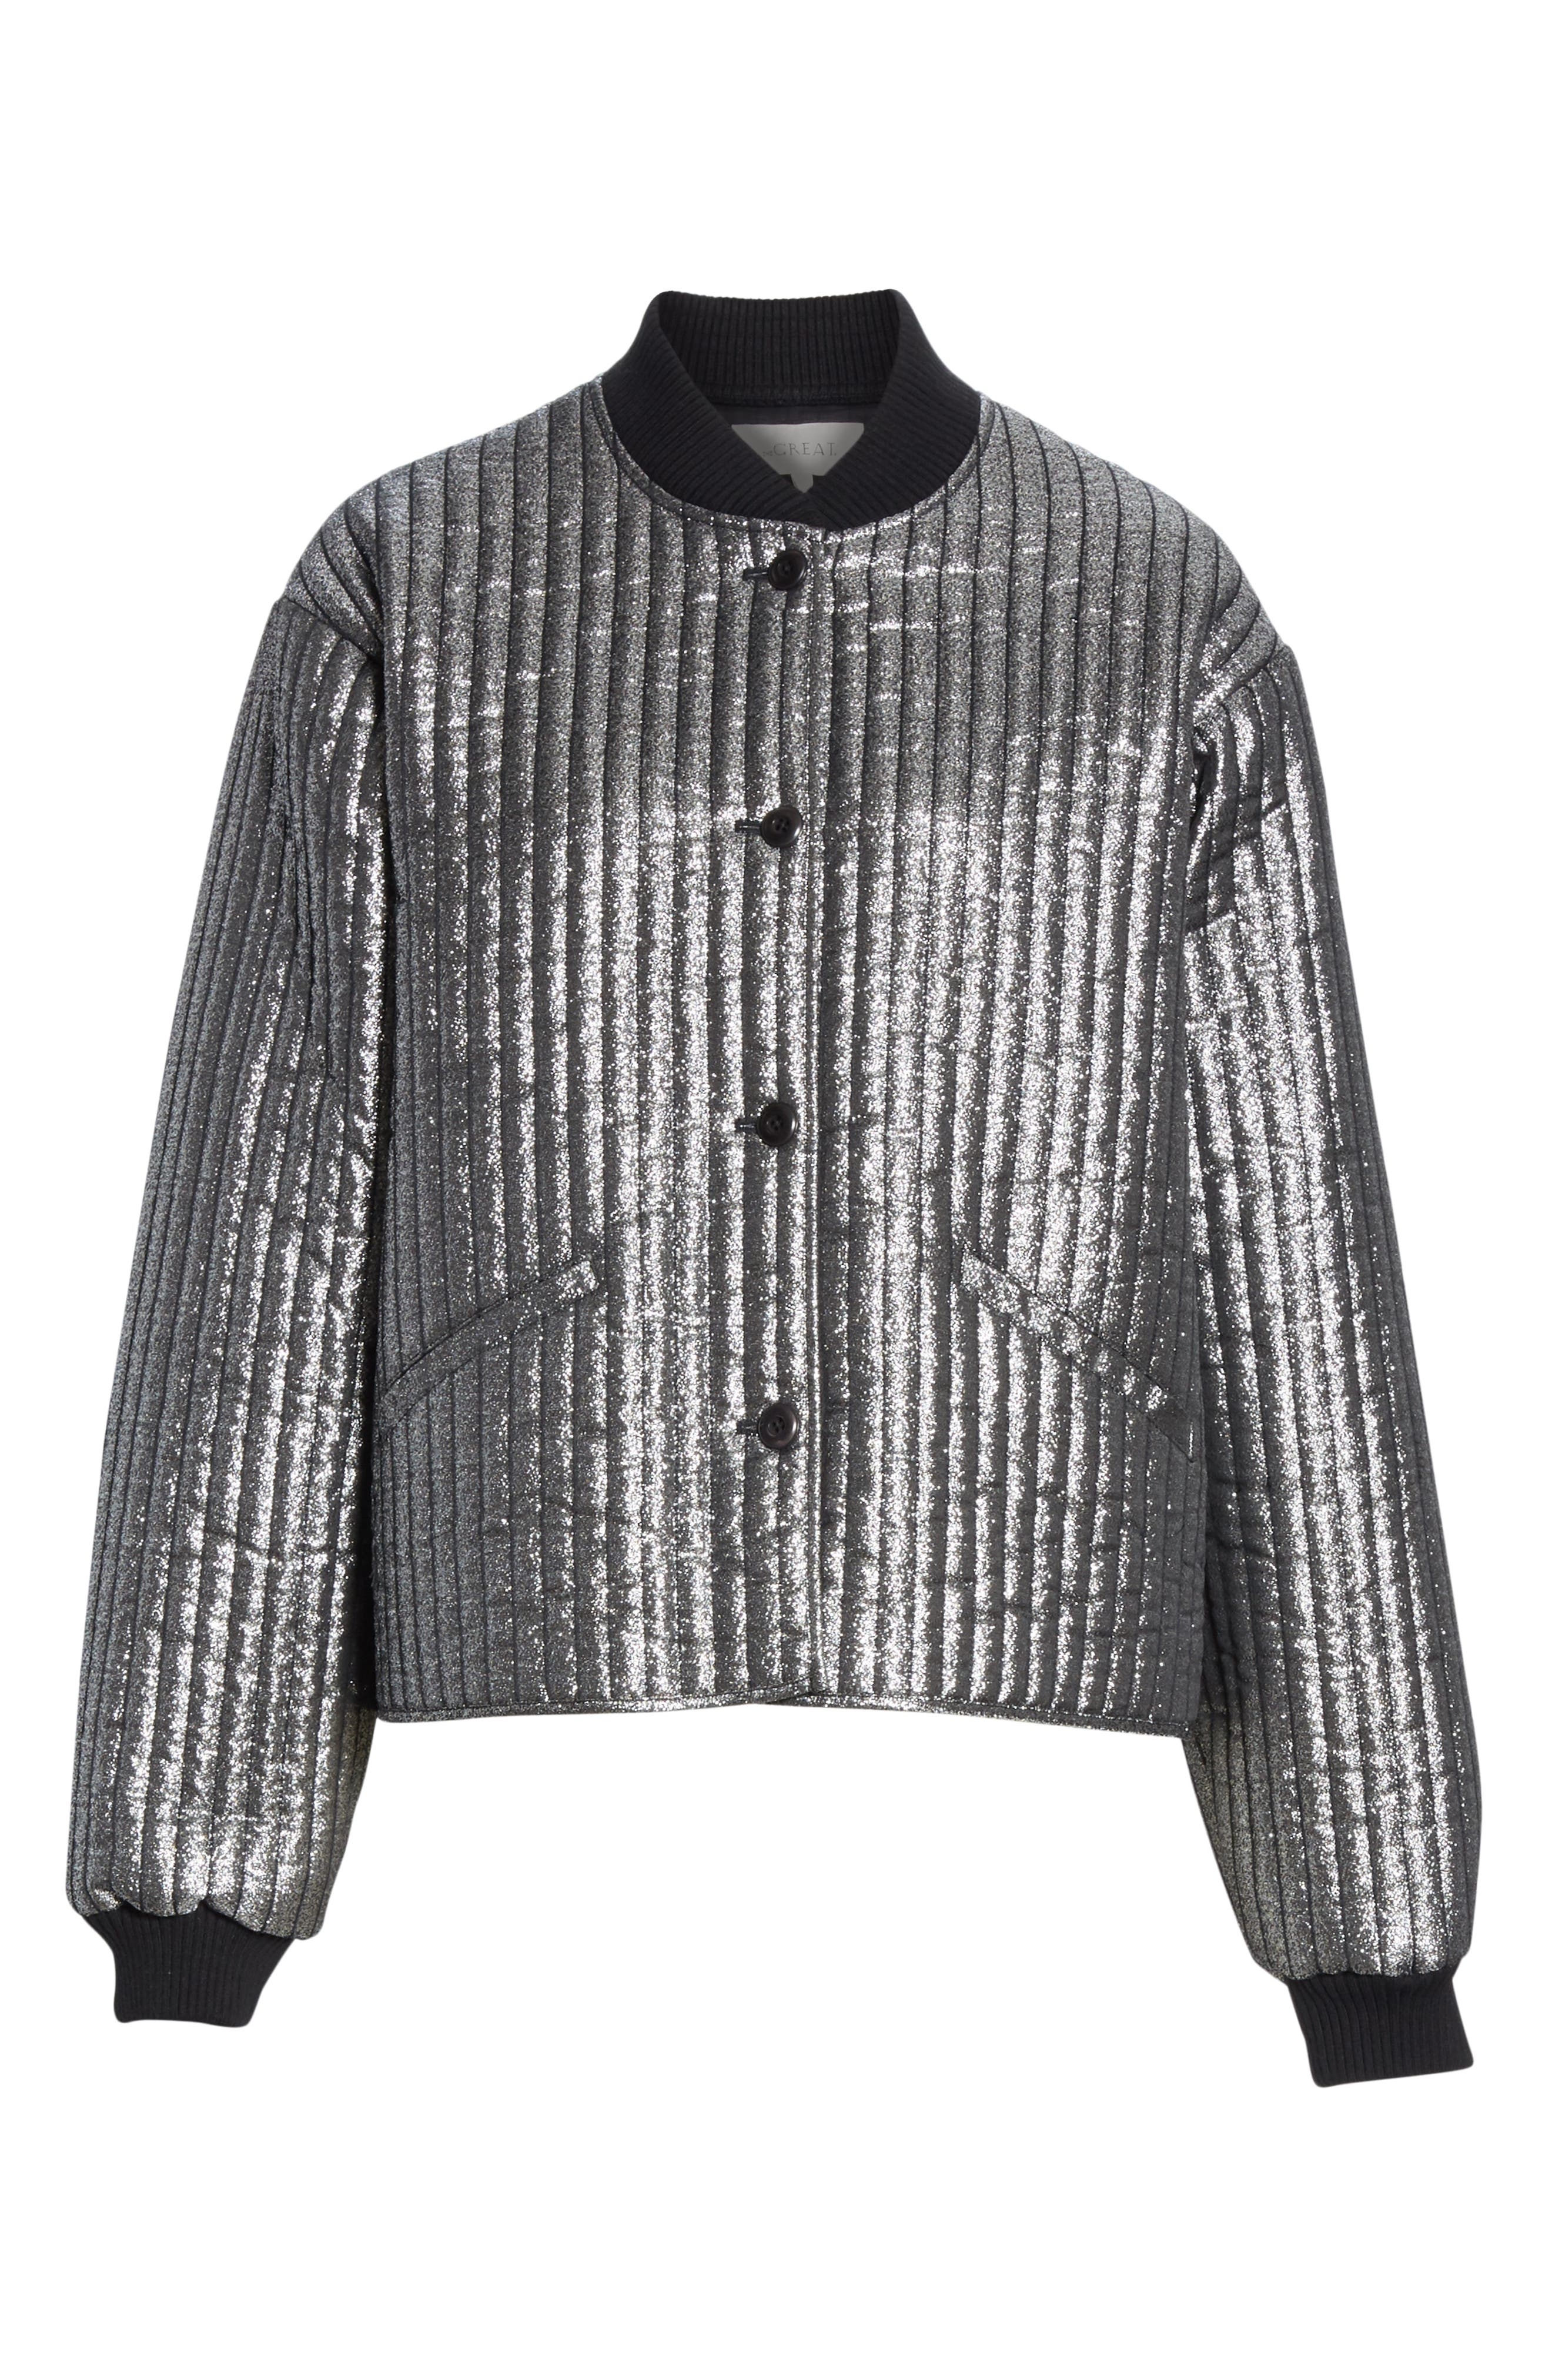 THE GREAT.,                             Quilted Metallic Bomber,                             Alternate thumbnail 5, color,                             040